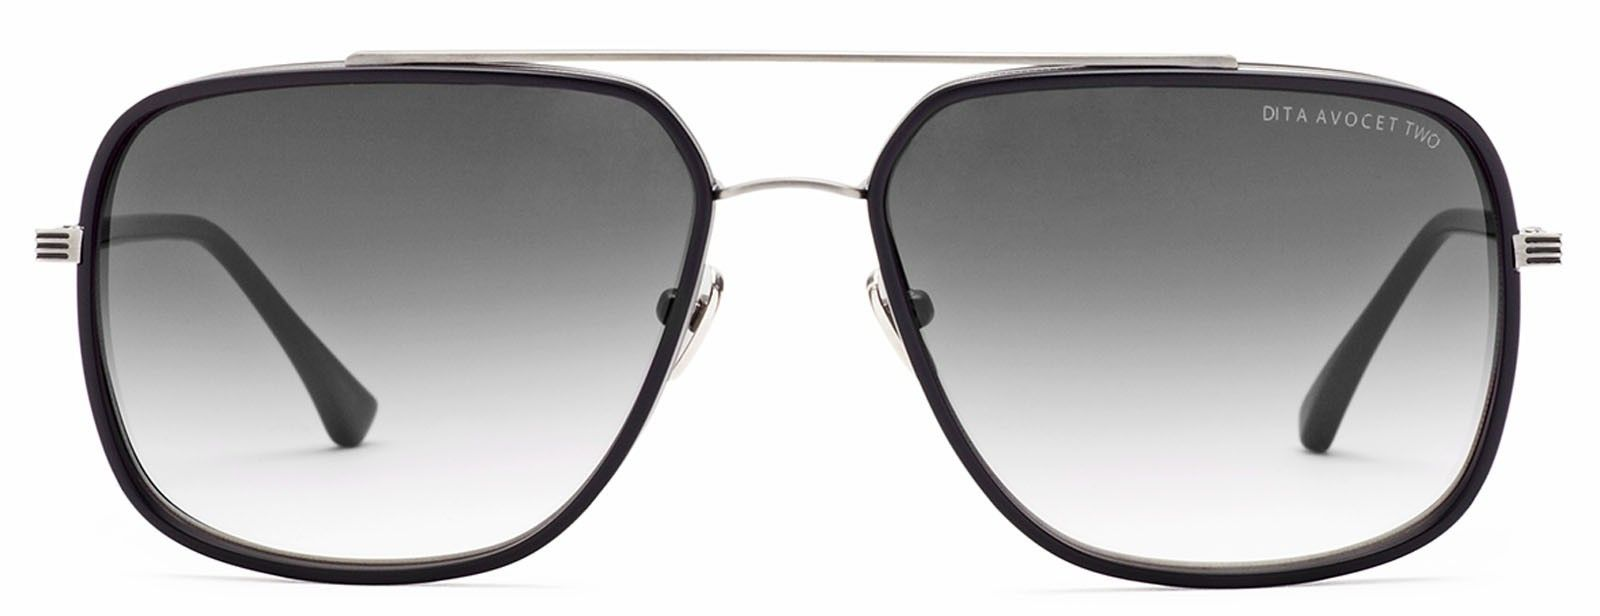 78a02fa1559 Avocet-Two sunglasses from DITA